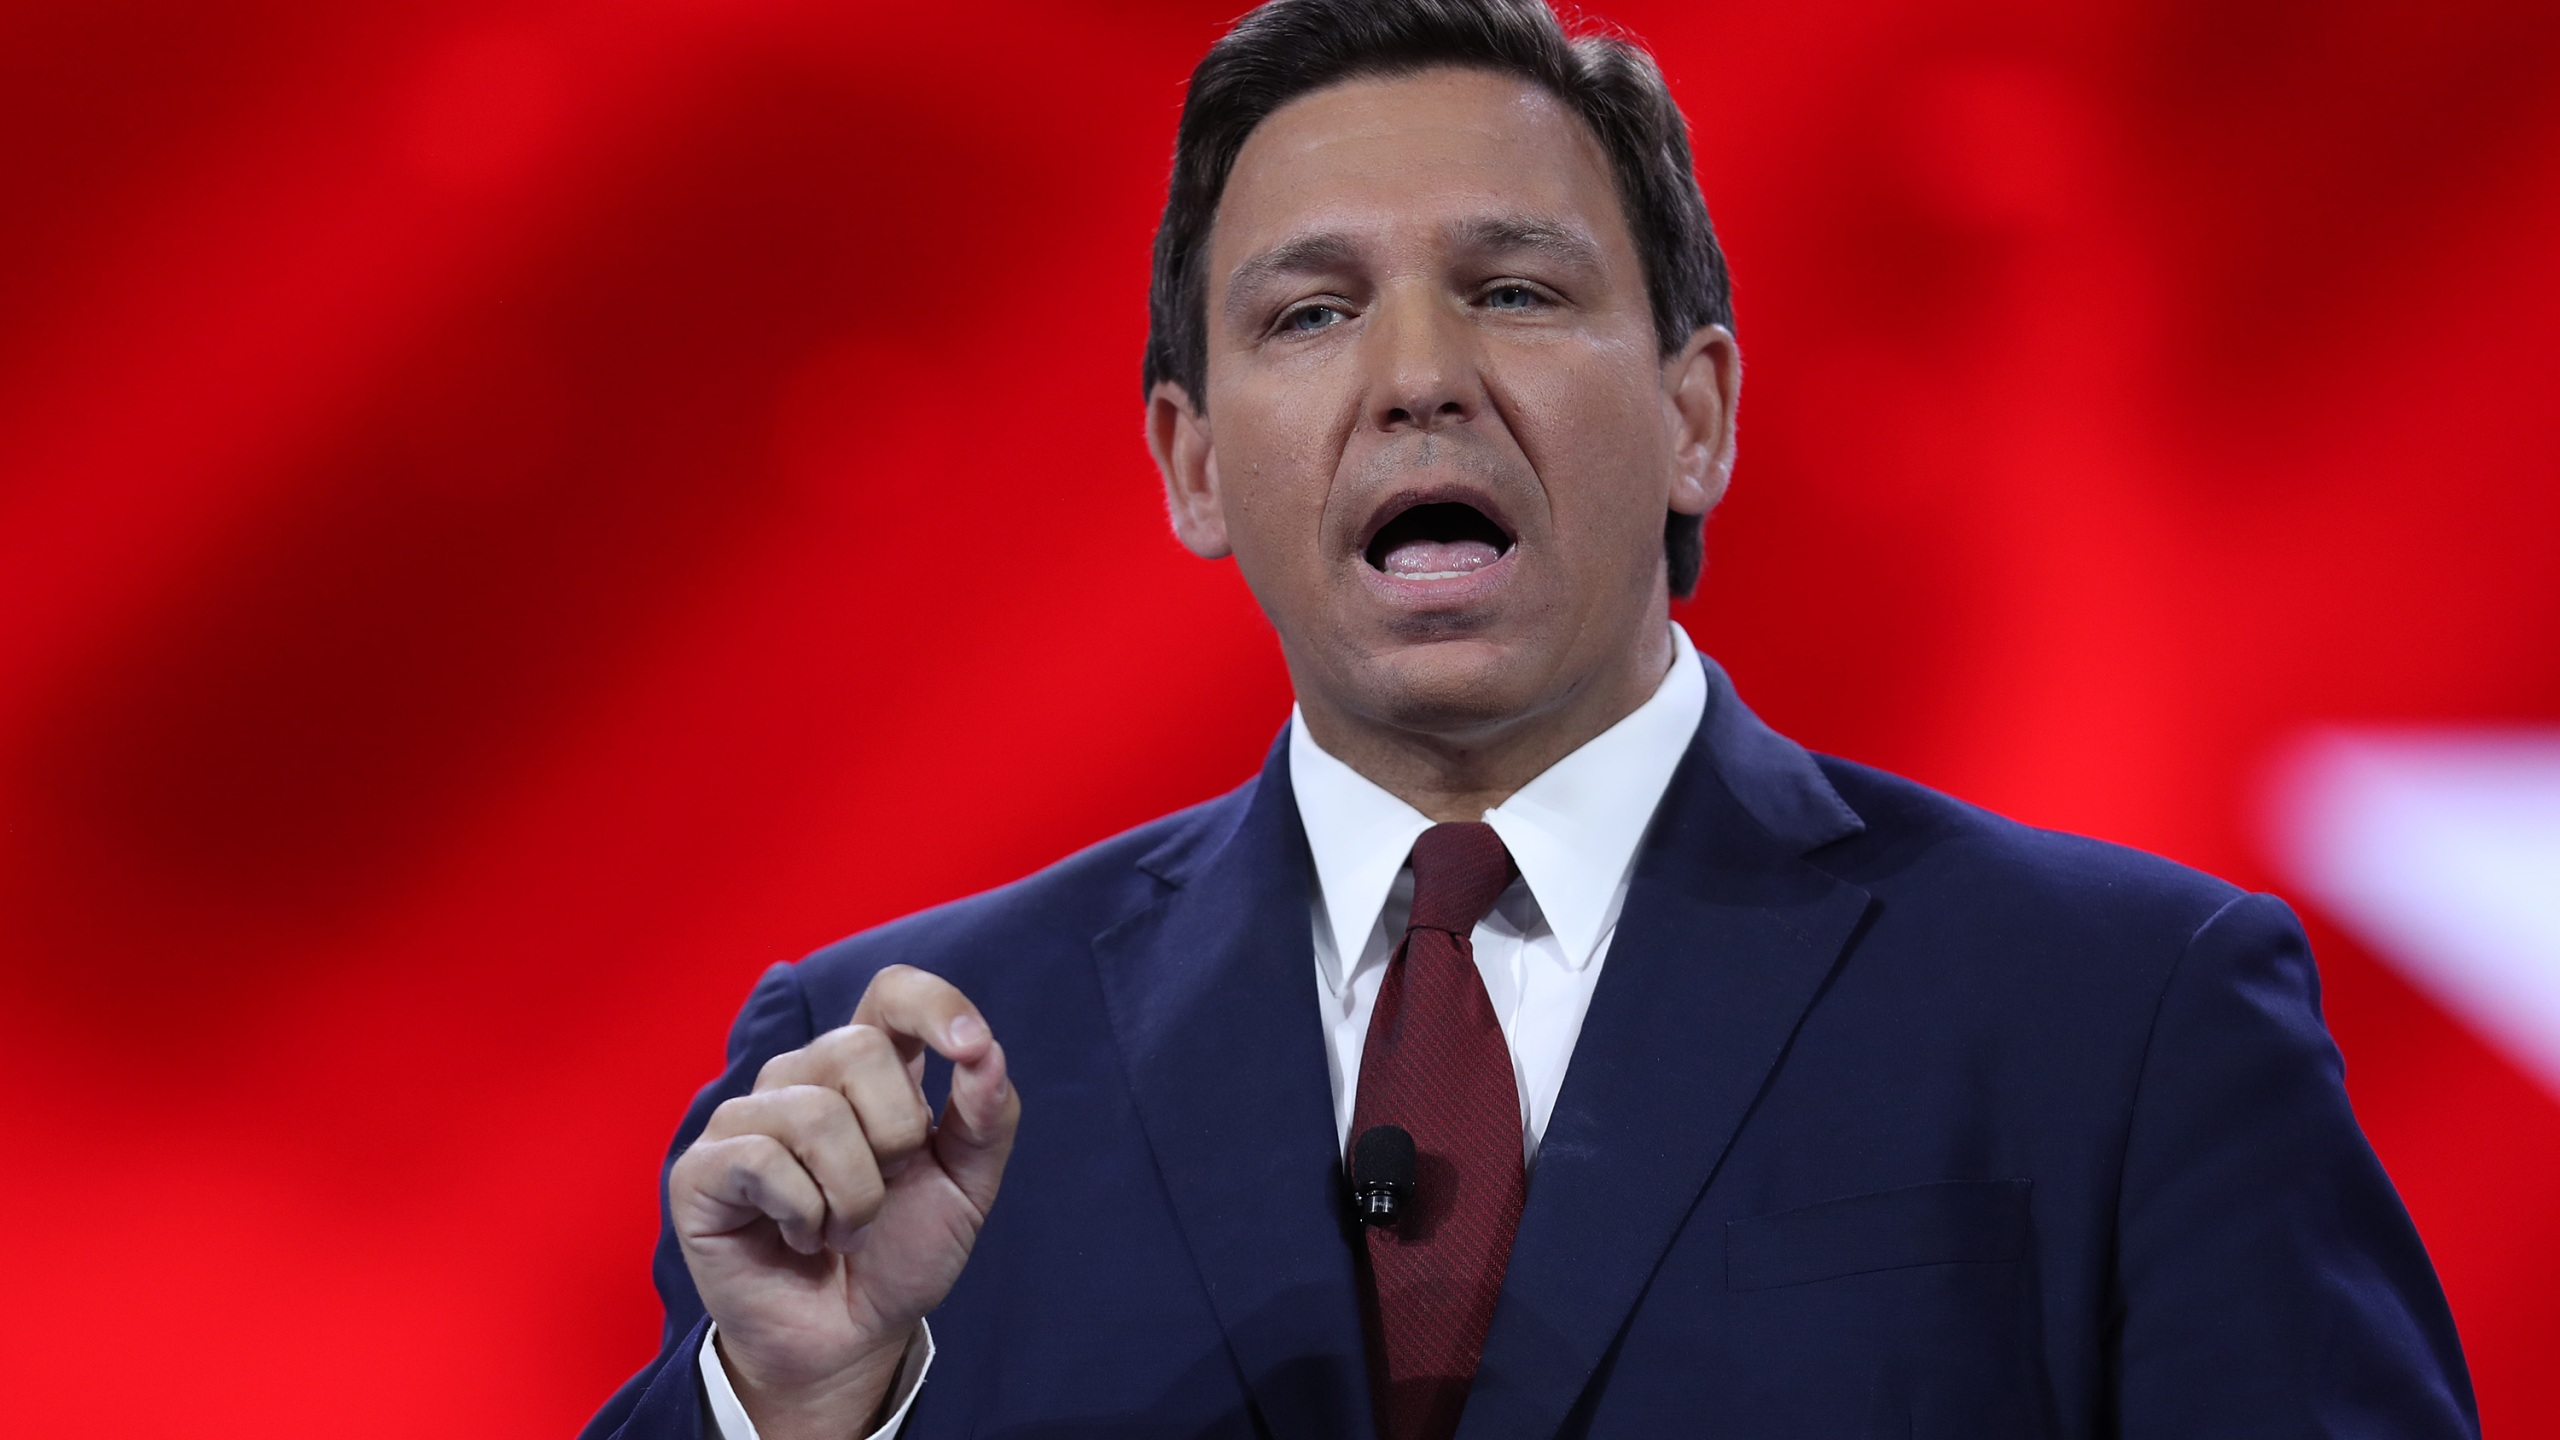 Florida Gov. Ron DeSantis speaks at the opening of the Conservative Political Action Conference at the Hyatt Regency on February 26, 2021 in Orlando, Florida. (Photo by Joe Raedle/Getty Images)